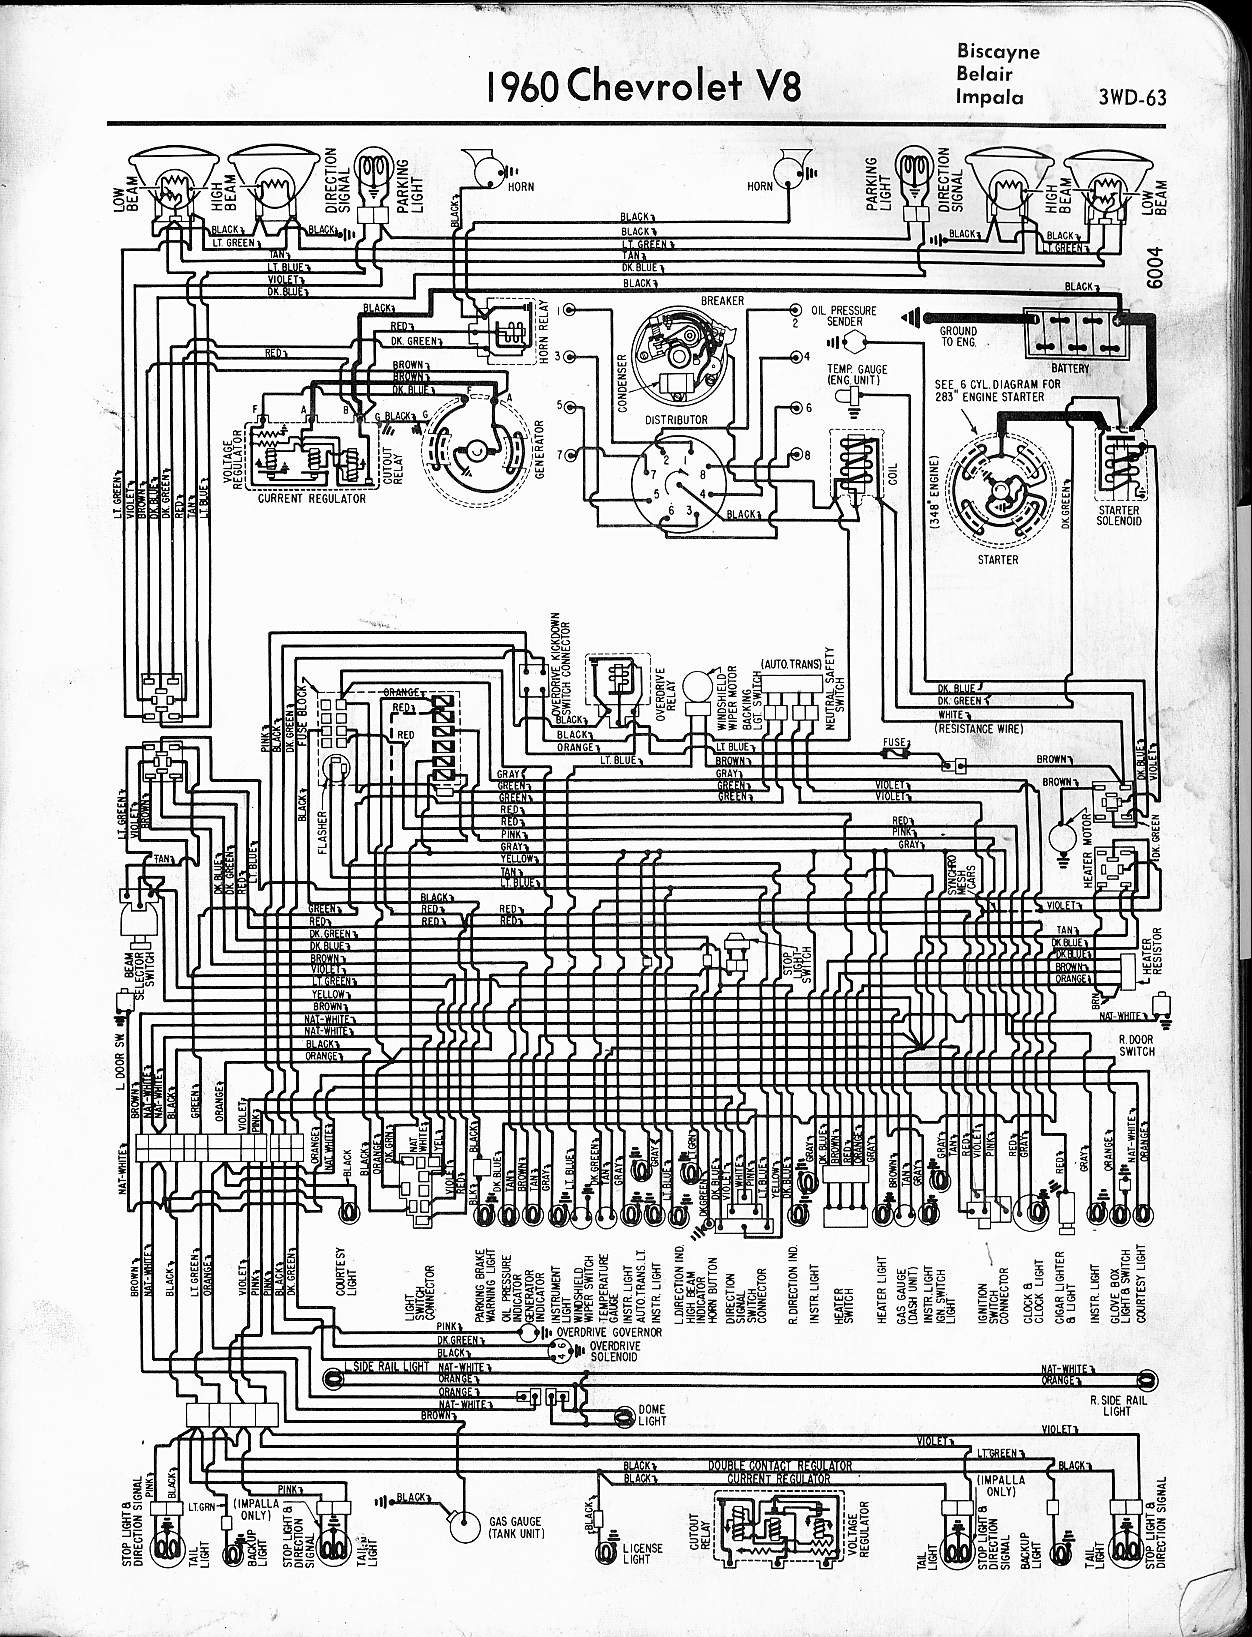 2006 Dodge Charger Engine Diagram 1934 Wiring Diagrams Chevy Impala 3 9 1961 Truck